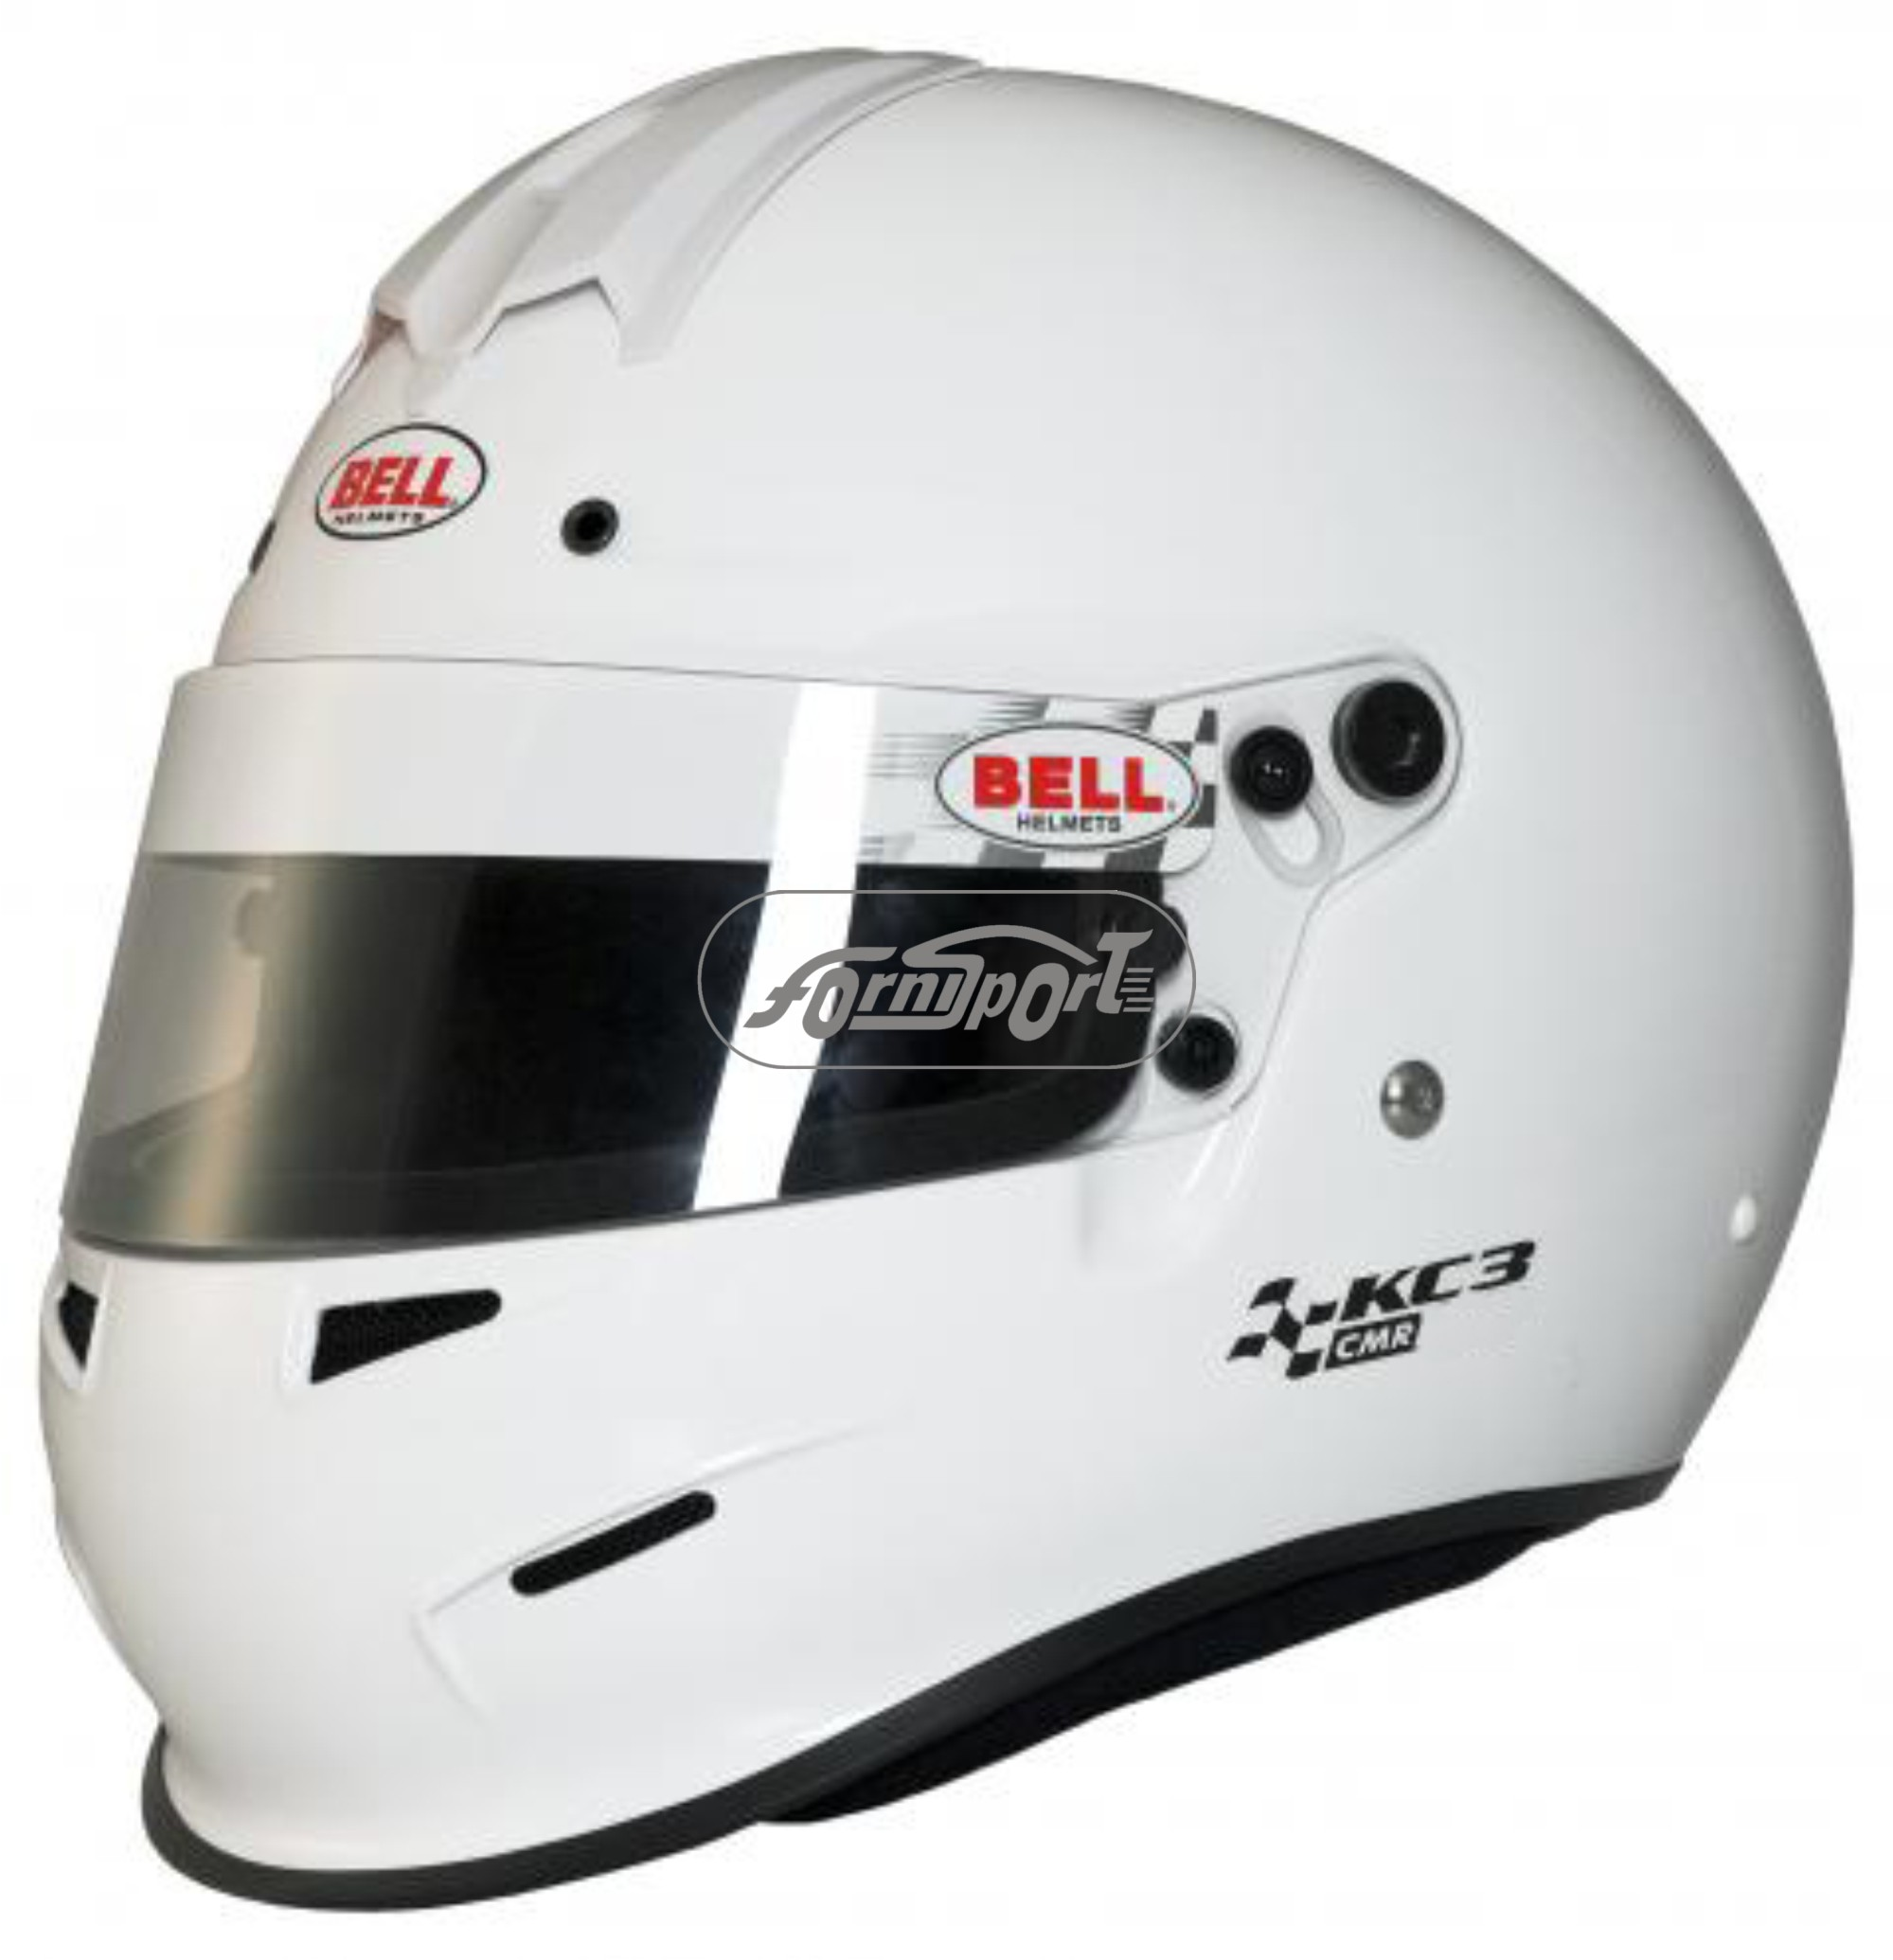 Casco FIA BELL Integral Hom KC3 T54